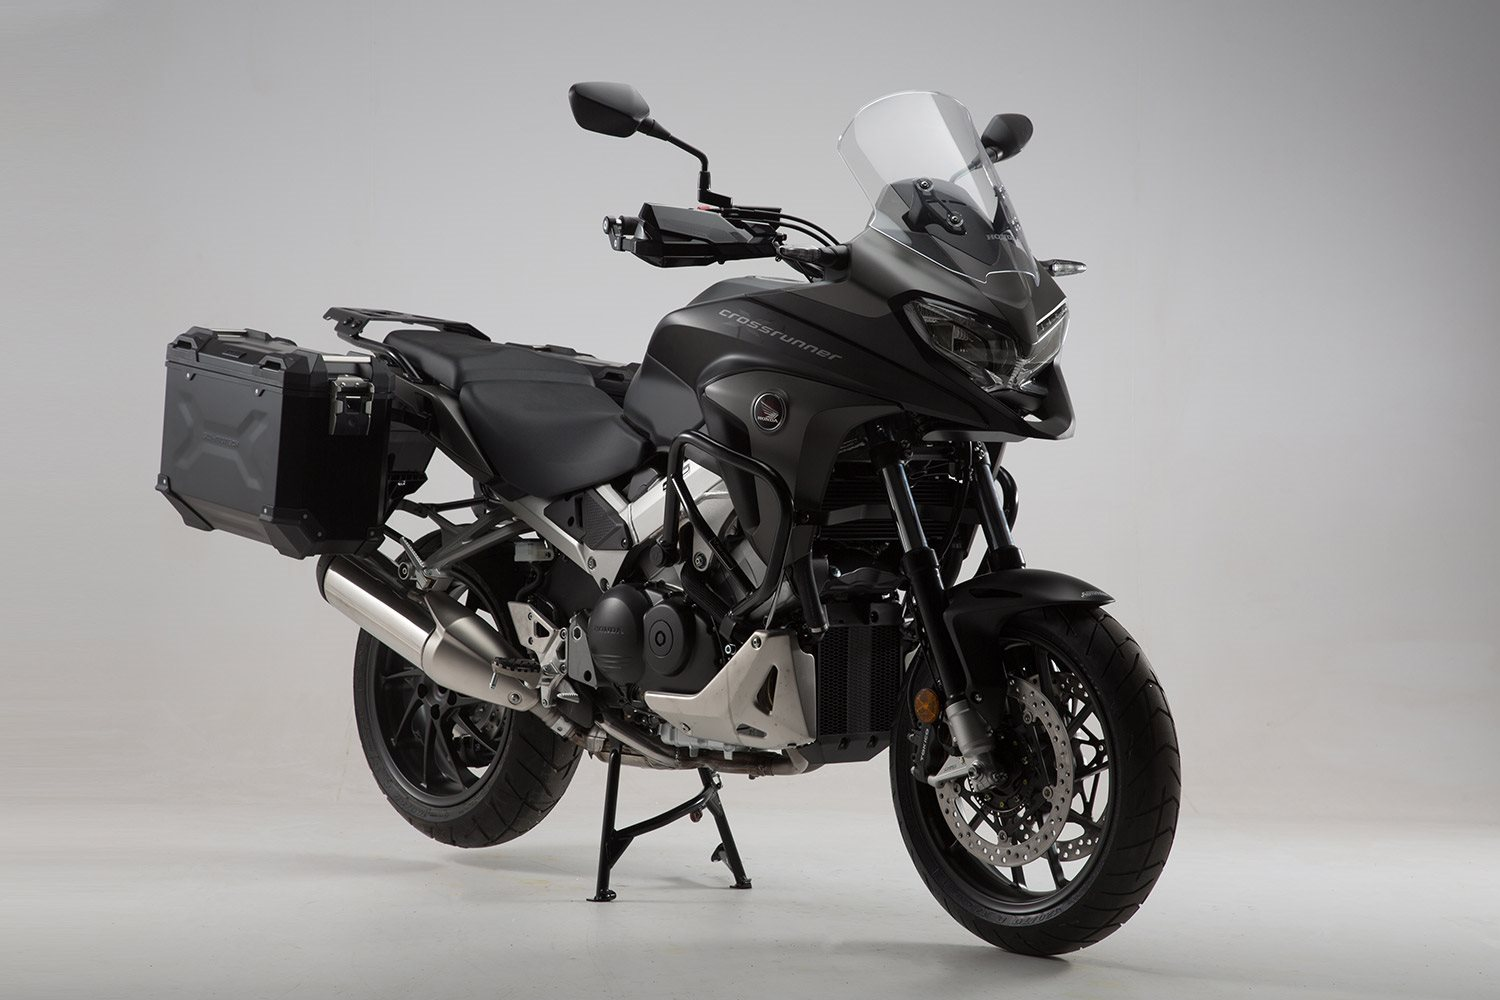 sw motech stattet honda vfr 800 x crossrunner aus motorrad news. Black Bedroom Furniture Sets. Home Design Ideas